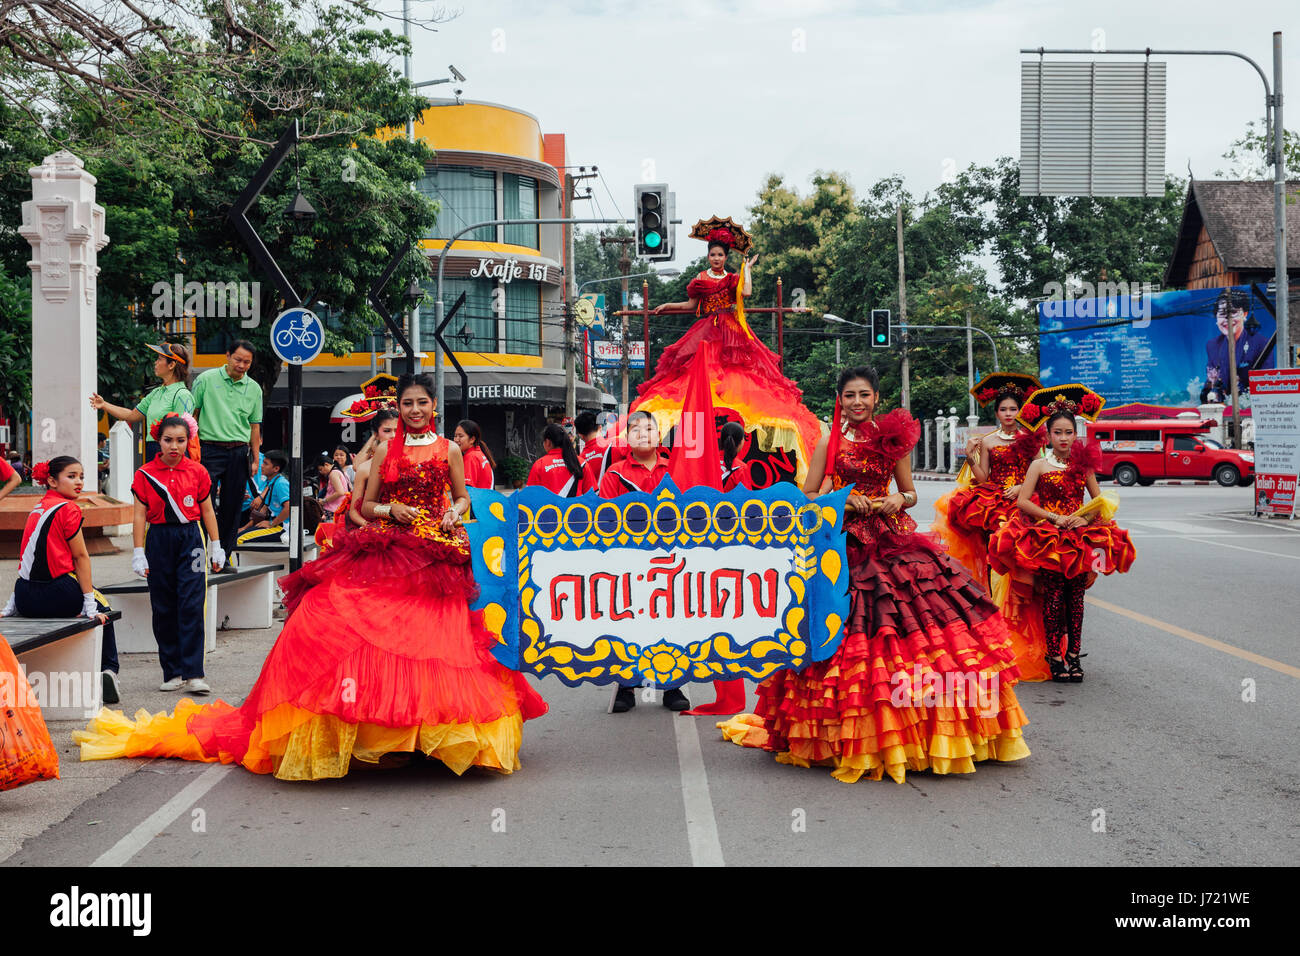 Chiang Mai, Thailand - August 24, 2016: Young girls and boys in festival costumes parade near the Three Kings Monument - Stock Image